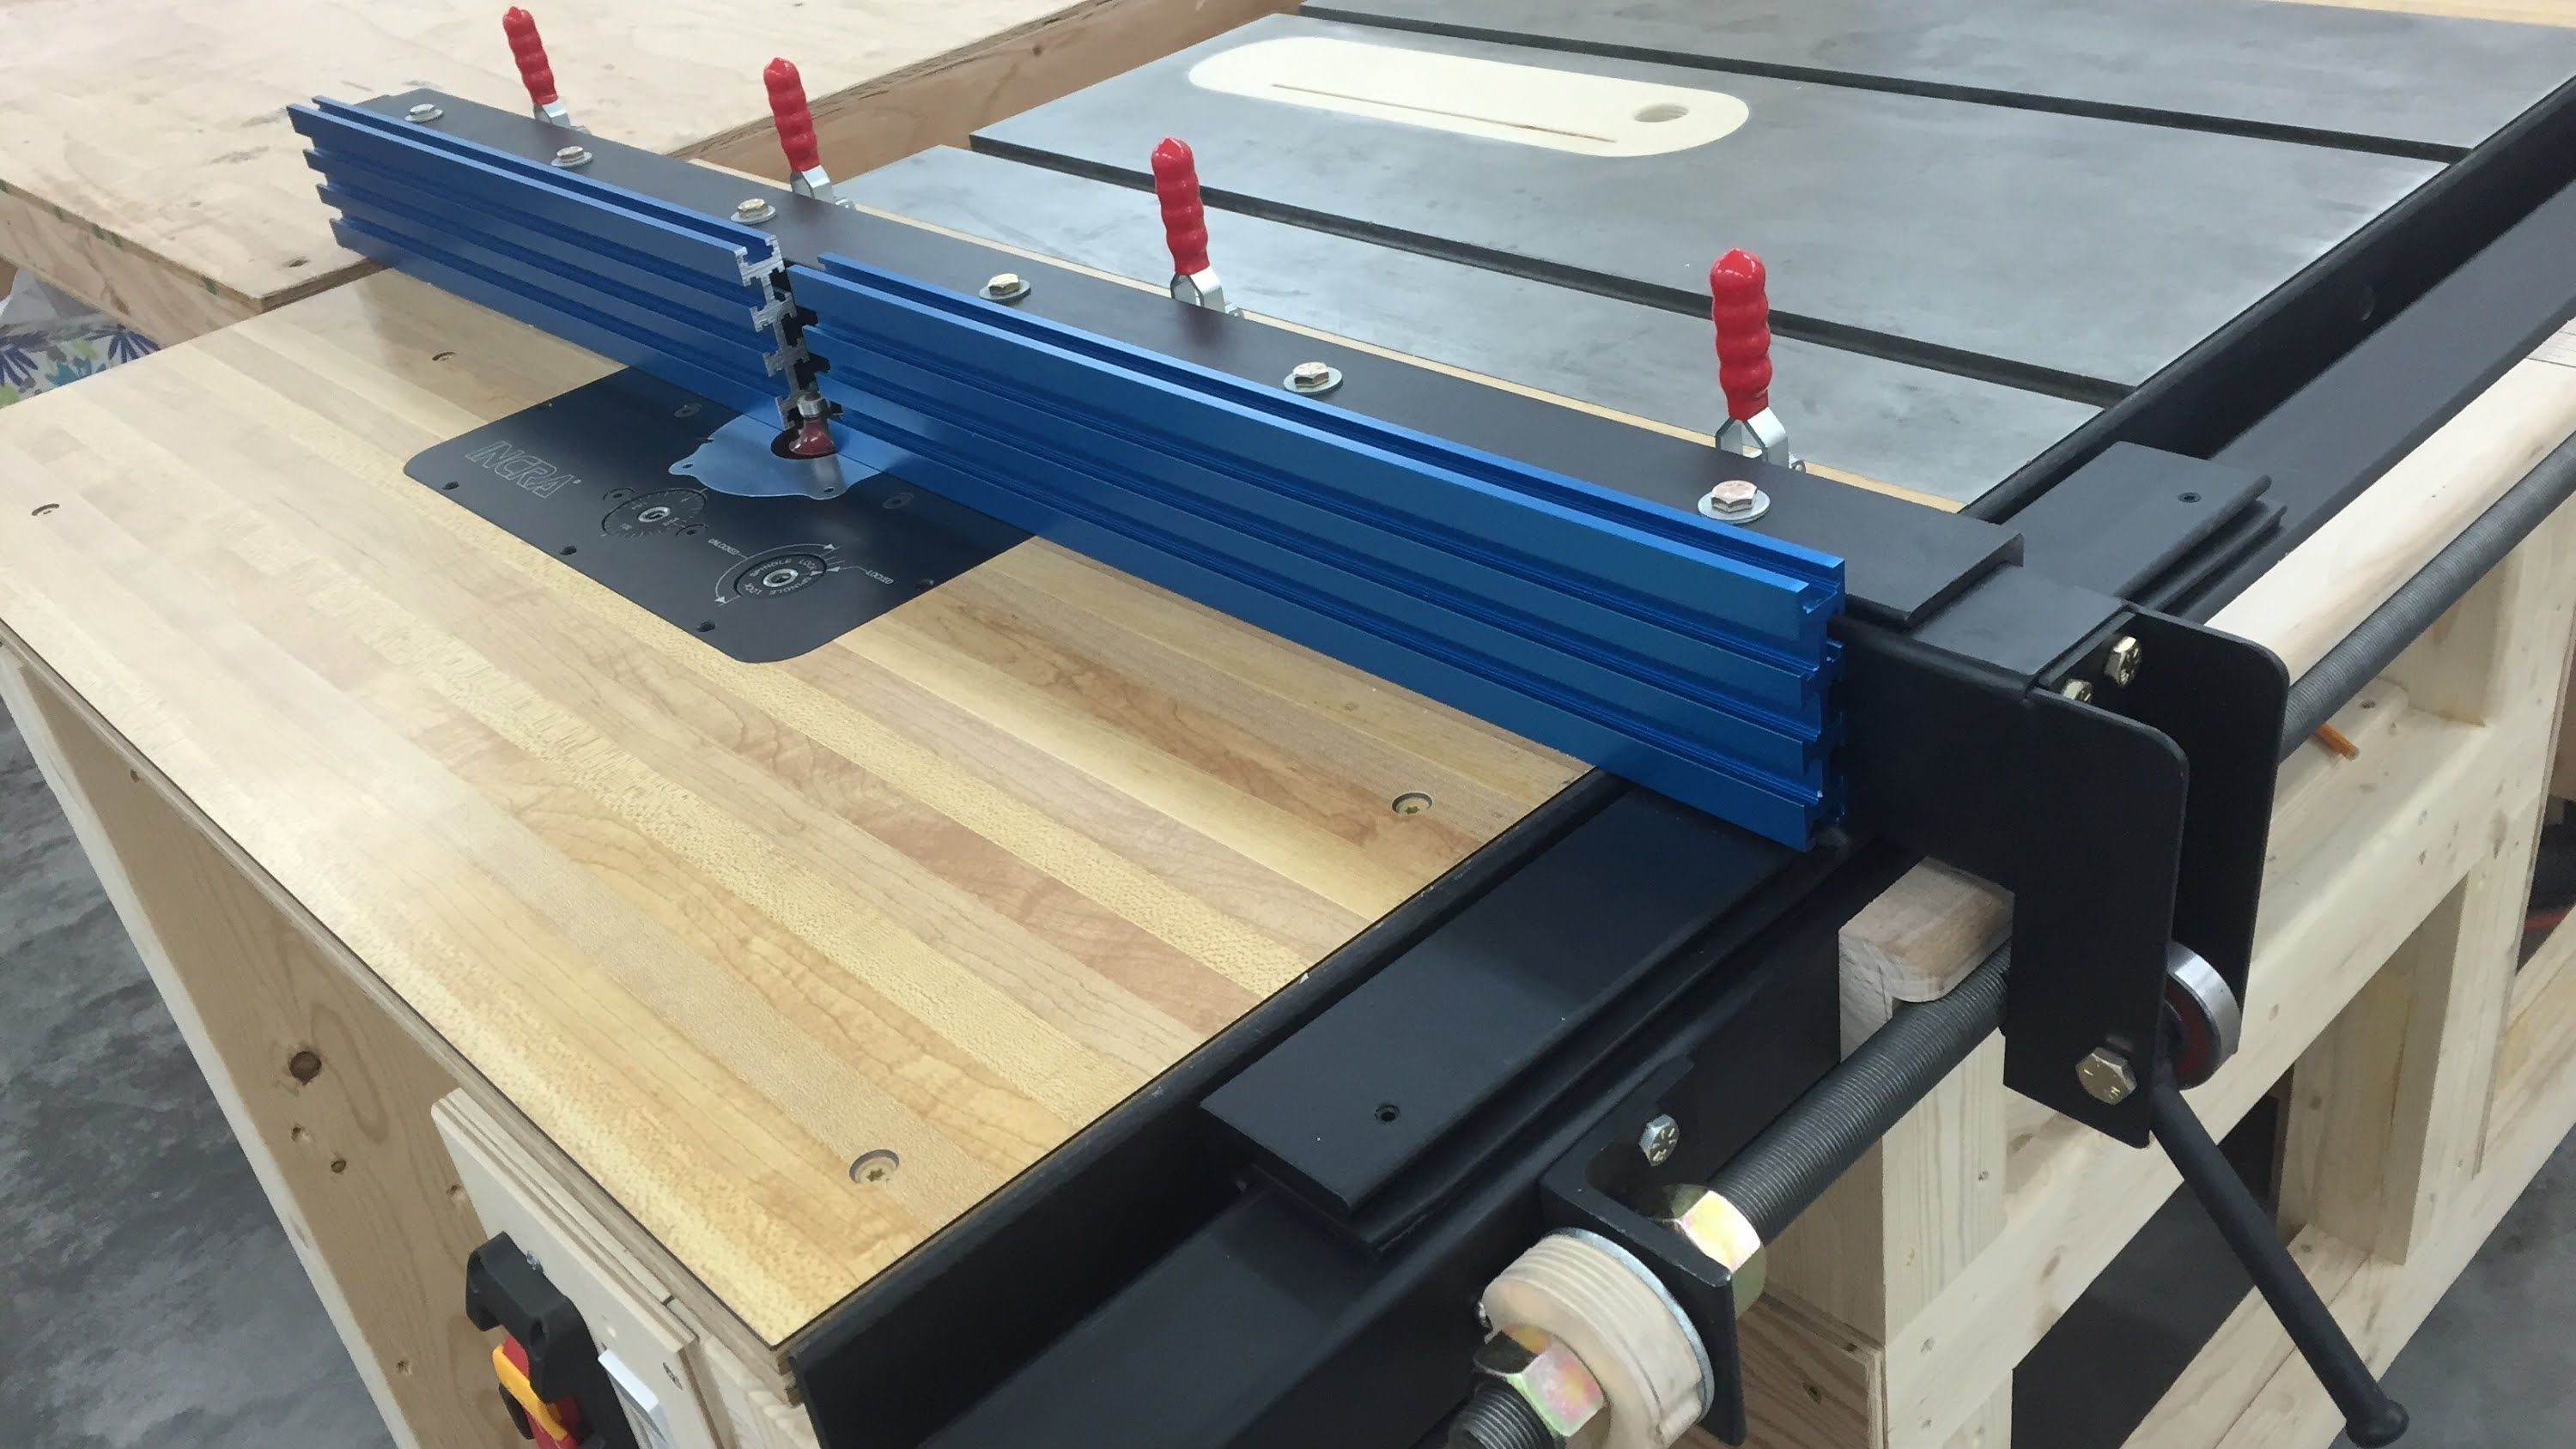 Making A Fence For My Extension Wing Router Table Taking Advantage